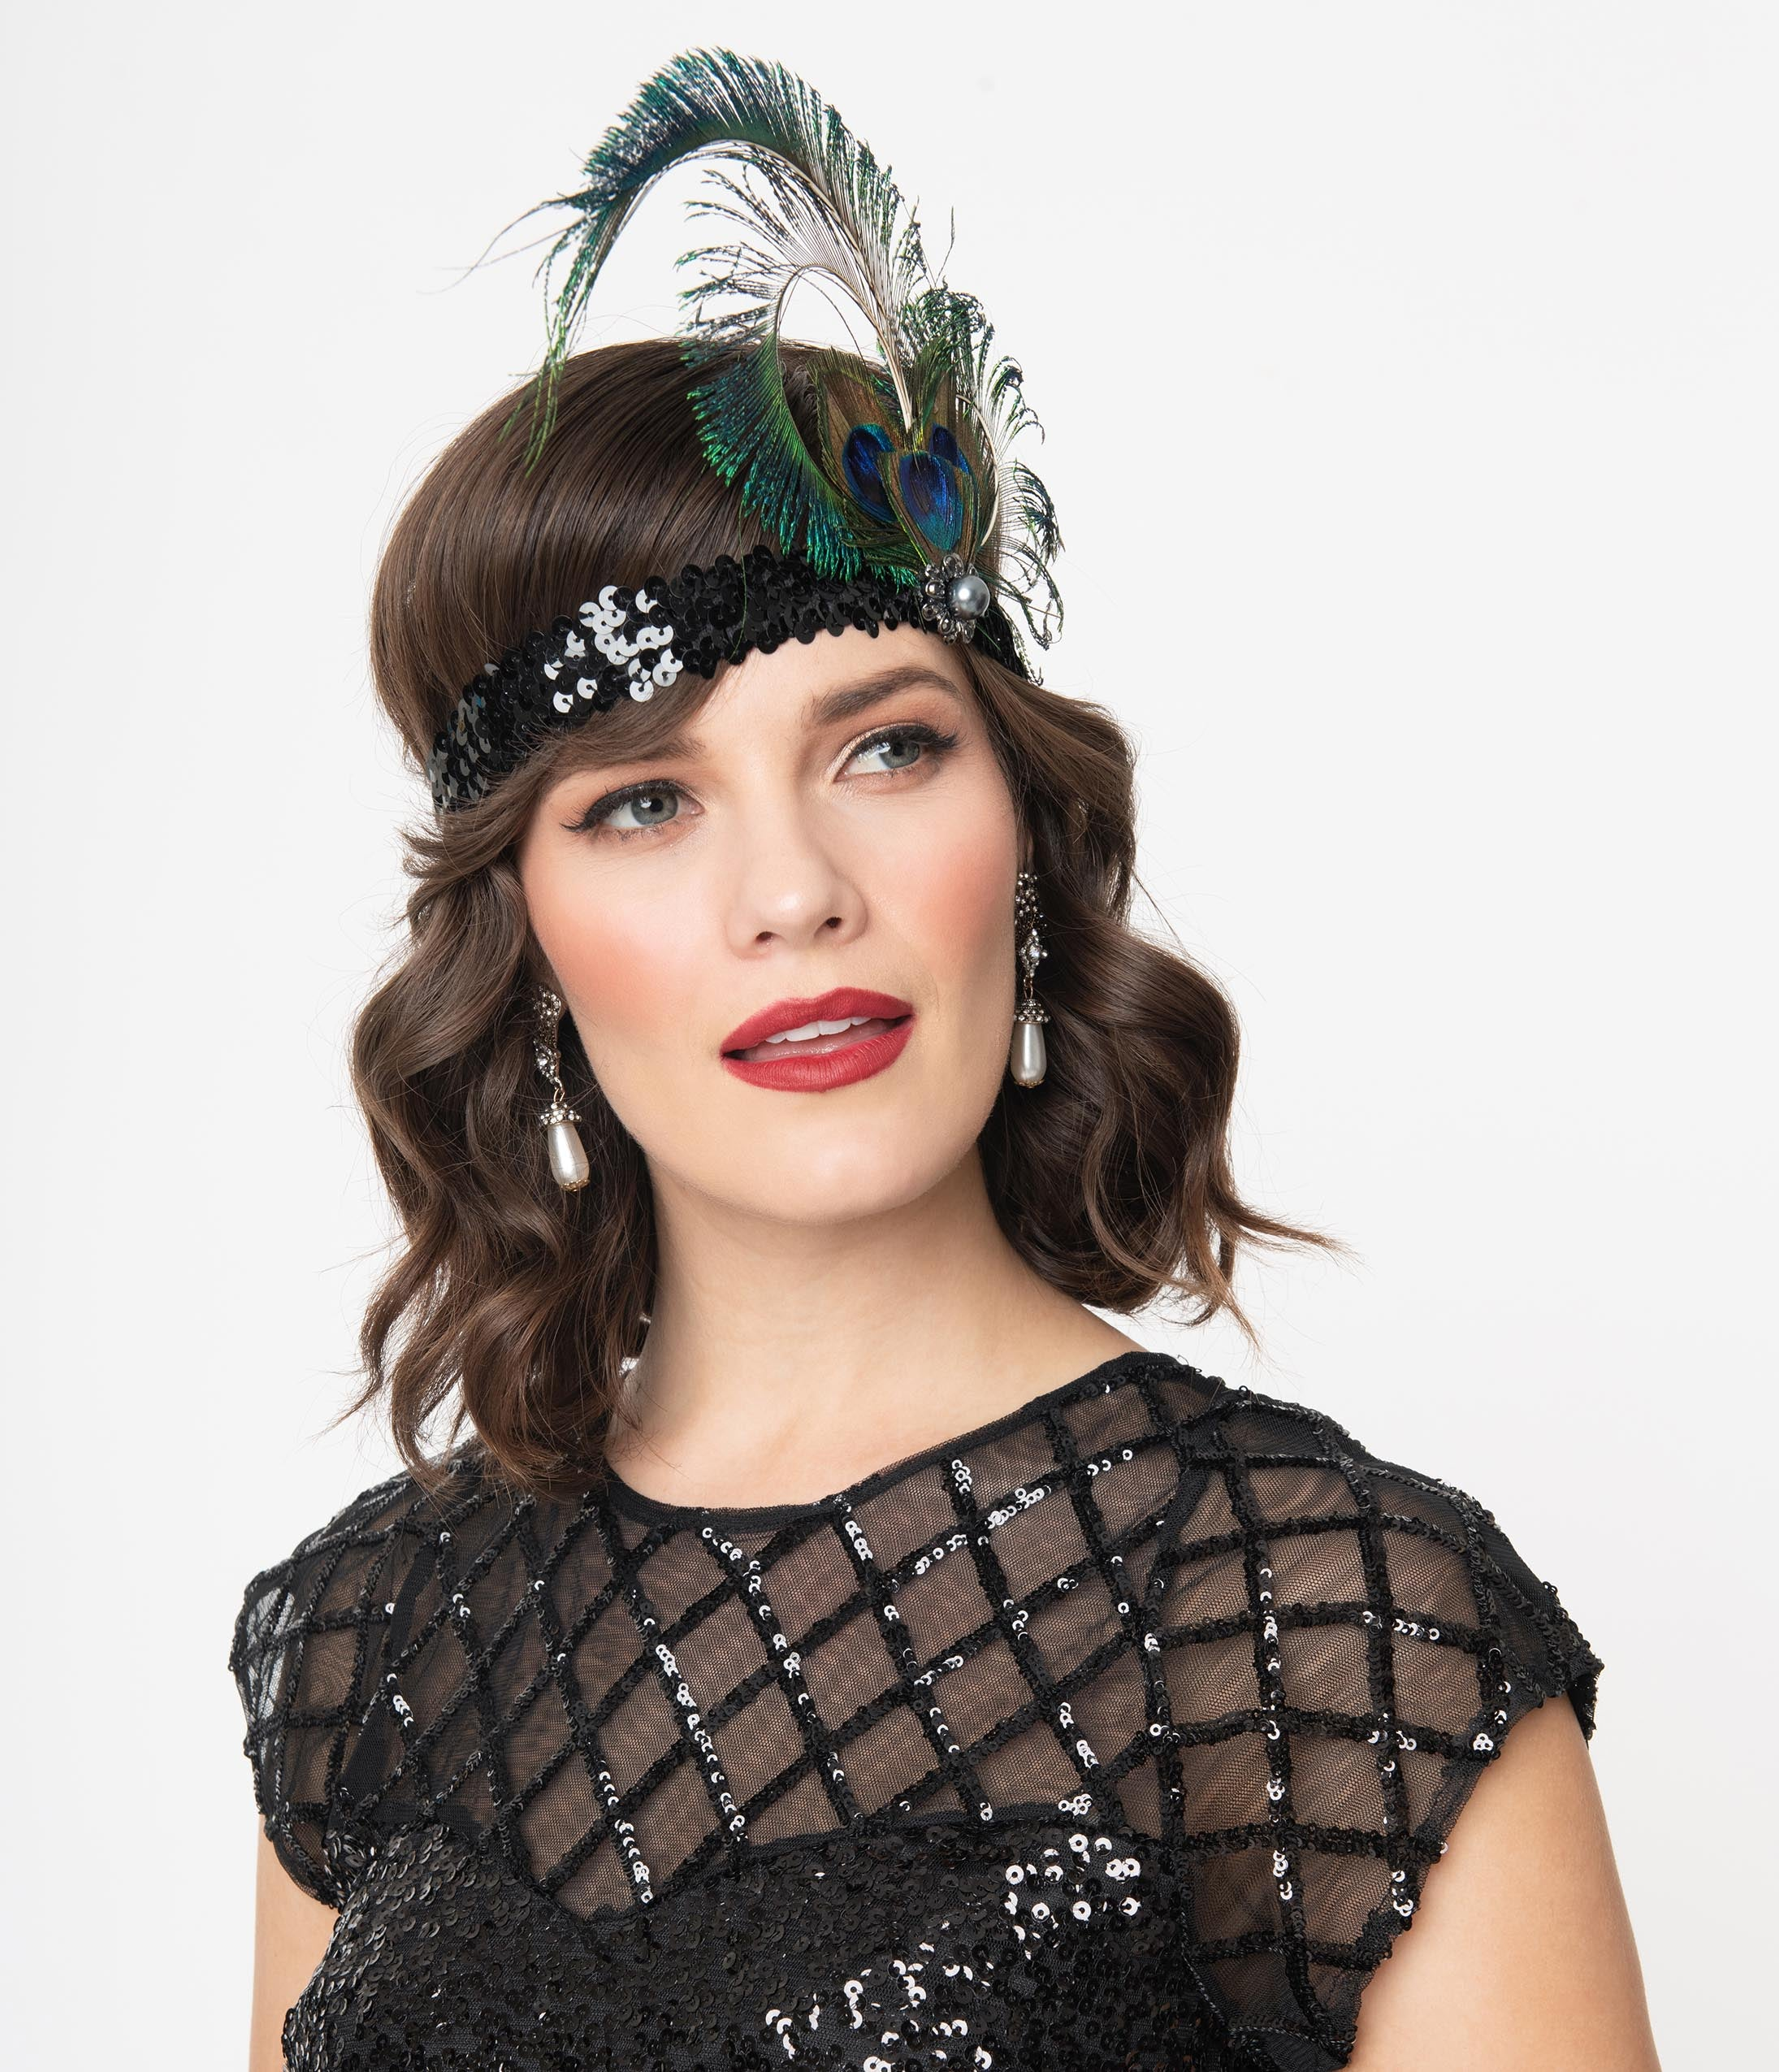 1920s Flapper Headband, Gatsby Headpiece, Wigs 1920S Black Sequin Peacock Feather Flapper Headband $32.00 AT vintagedancer.com